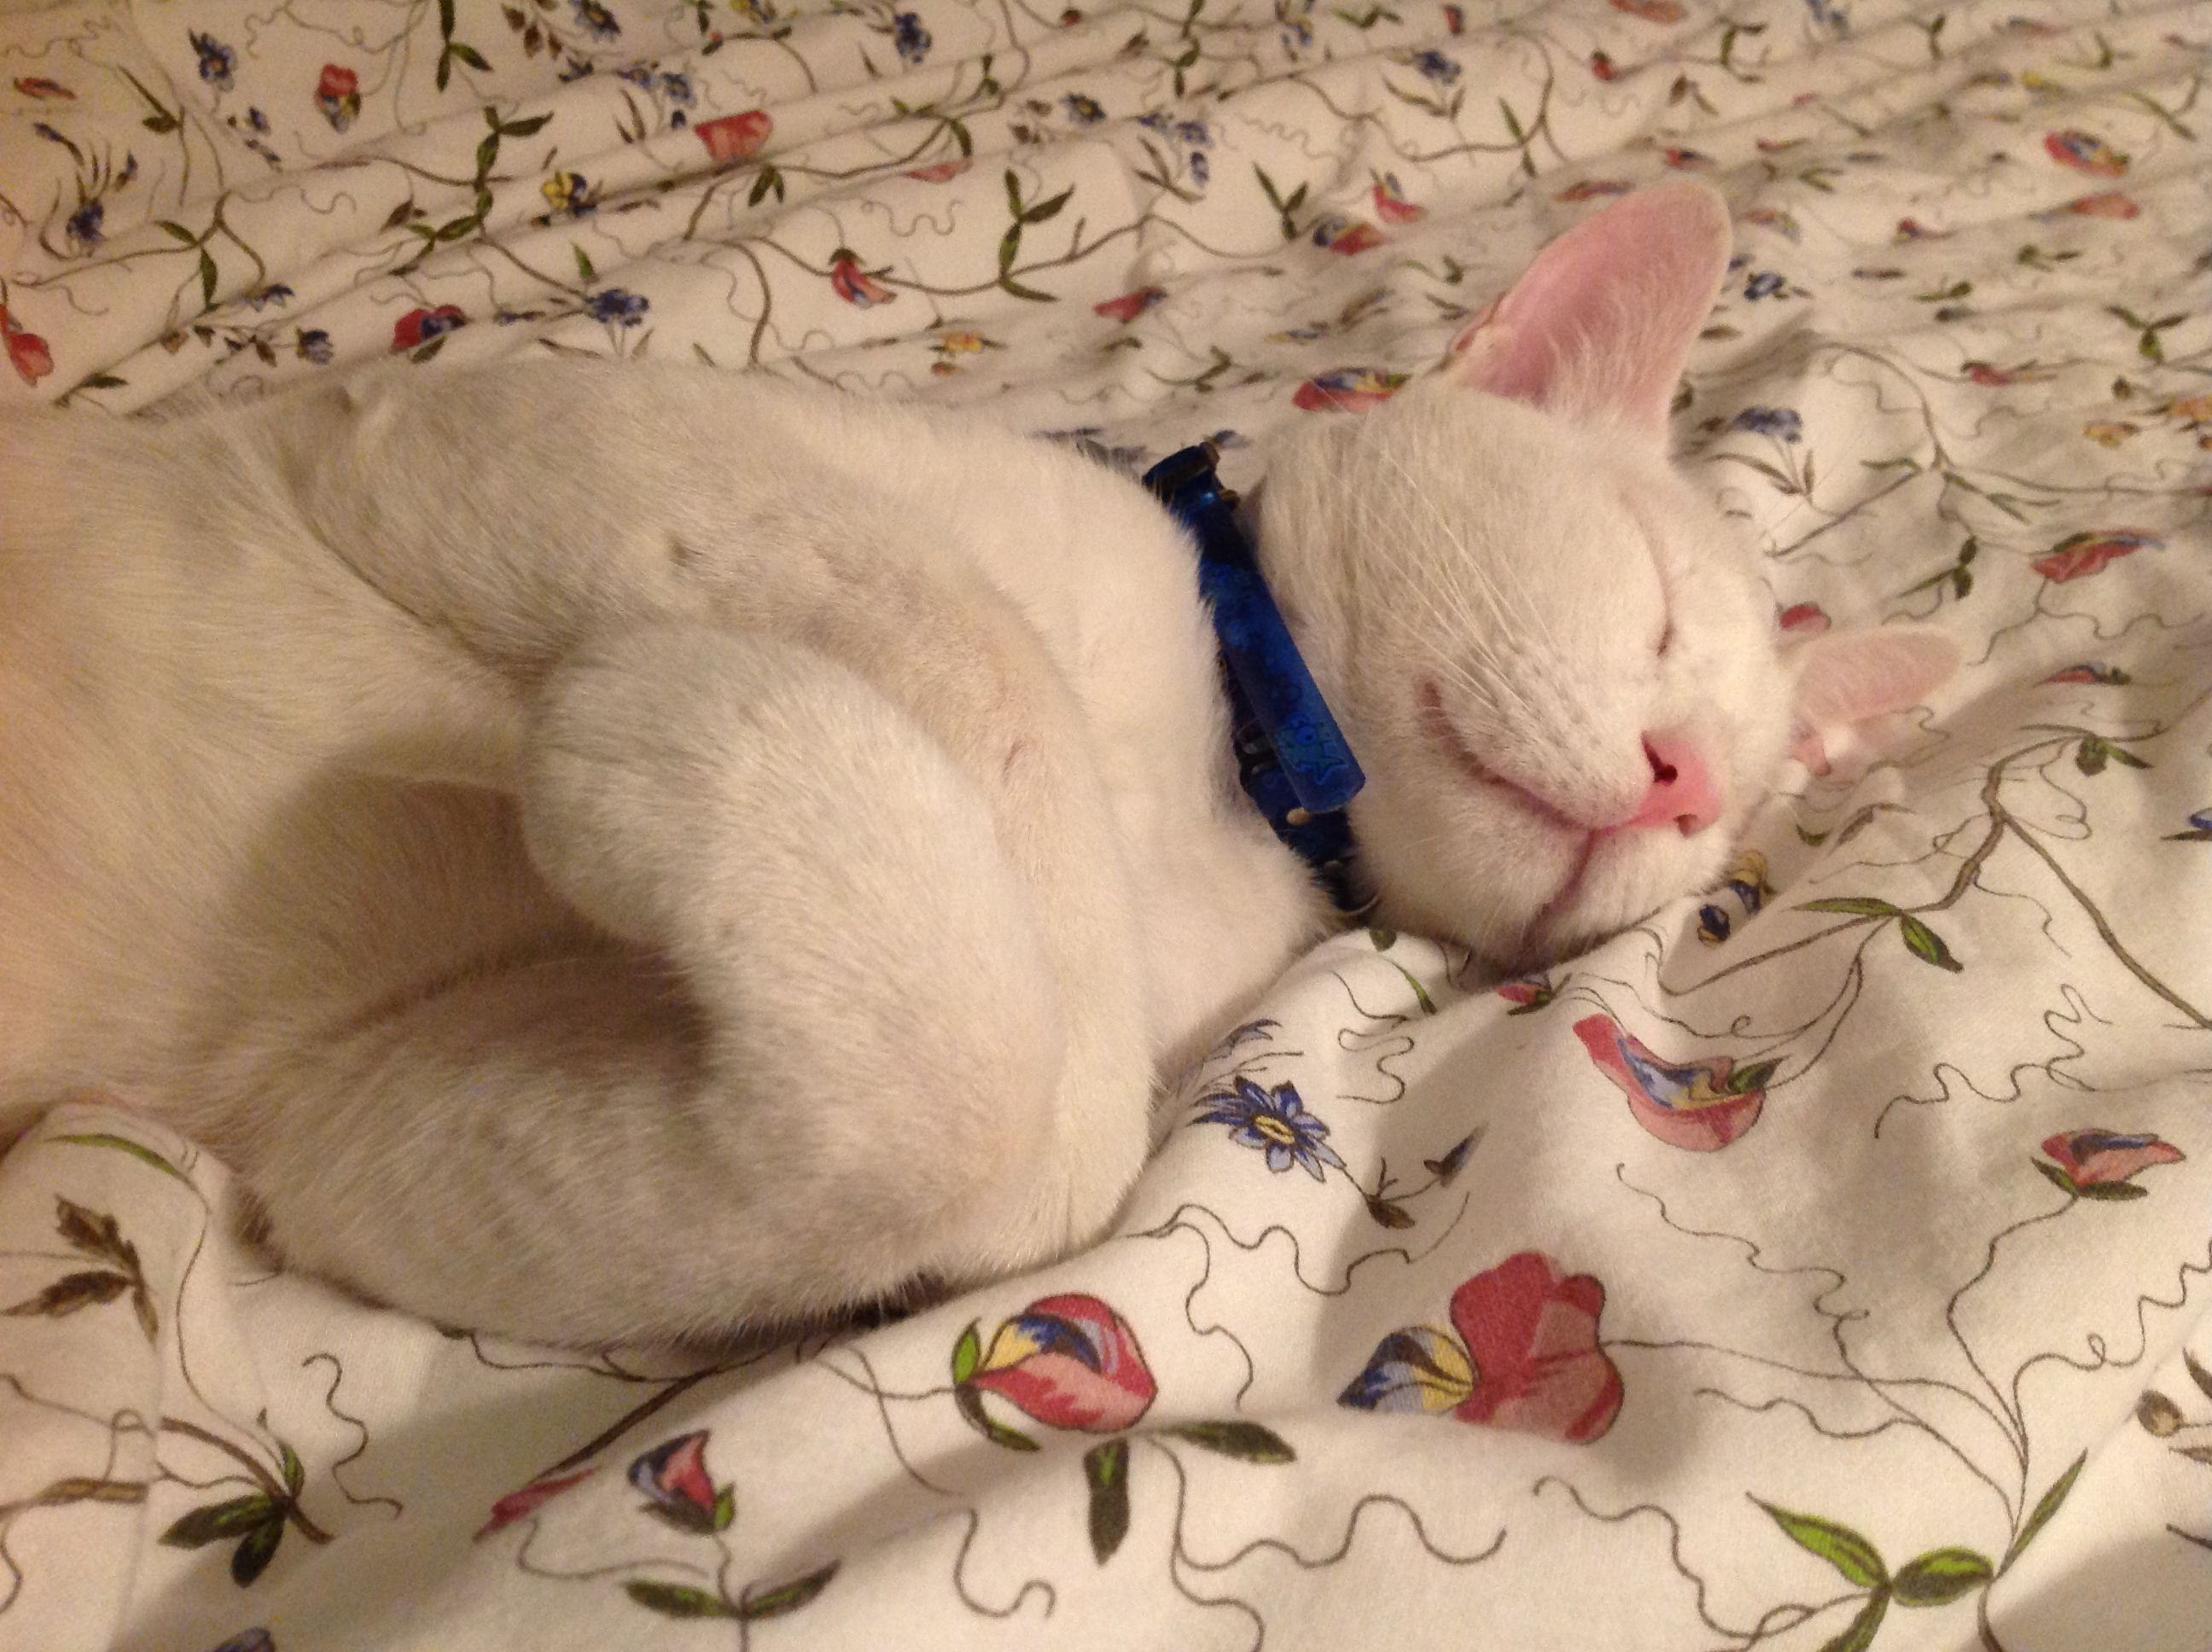 Blue is a handsome, one eyed cat, who now has a comfy bed